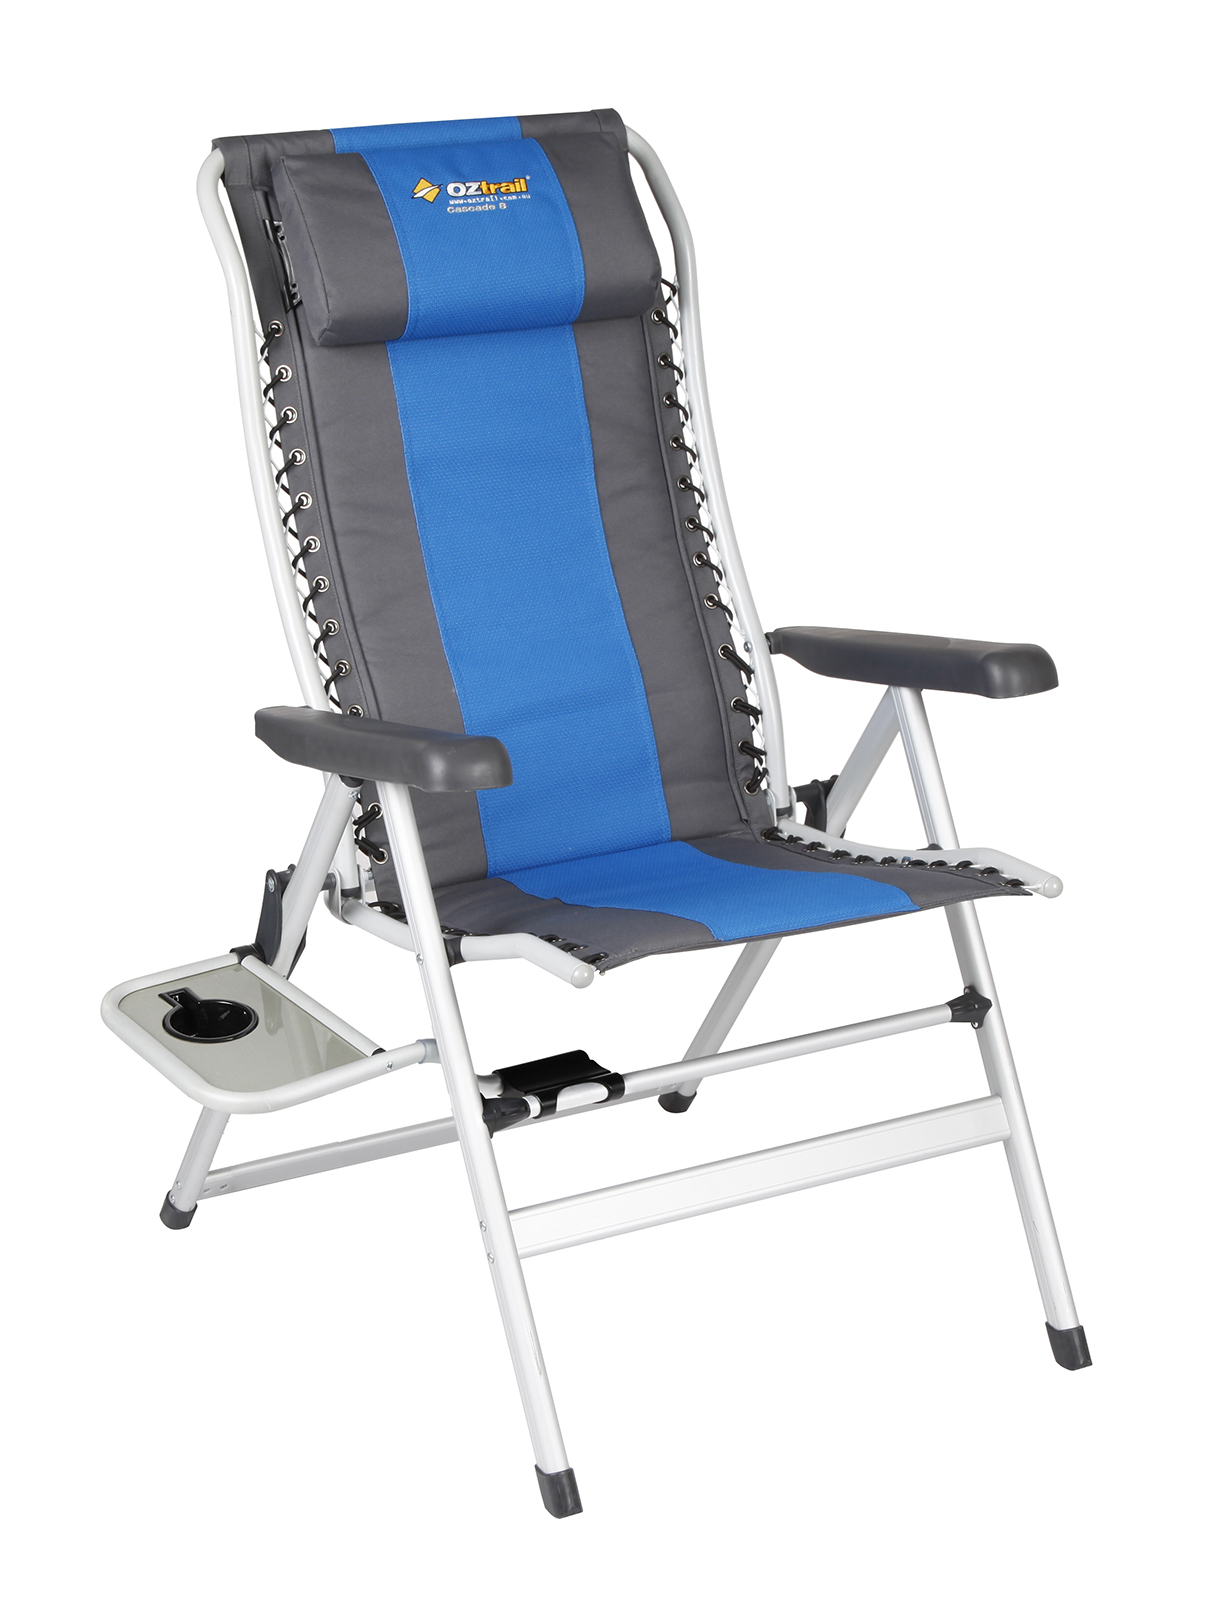 Deluxe Camping Chairs Oztrail Camping Chair Cascade Deluxe 8 Position With Side